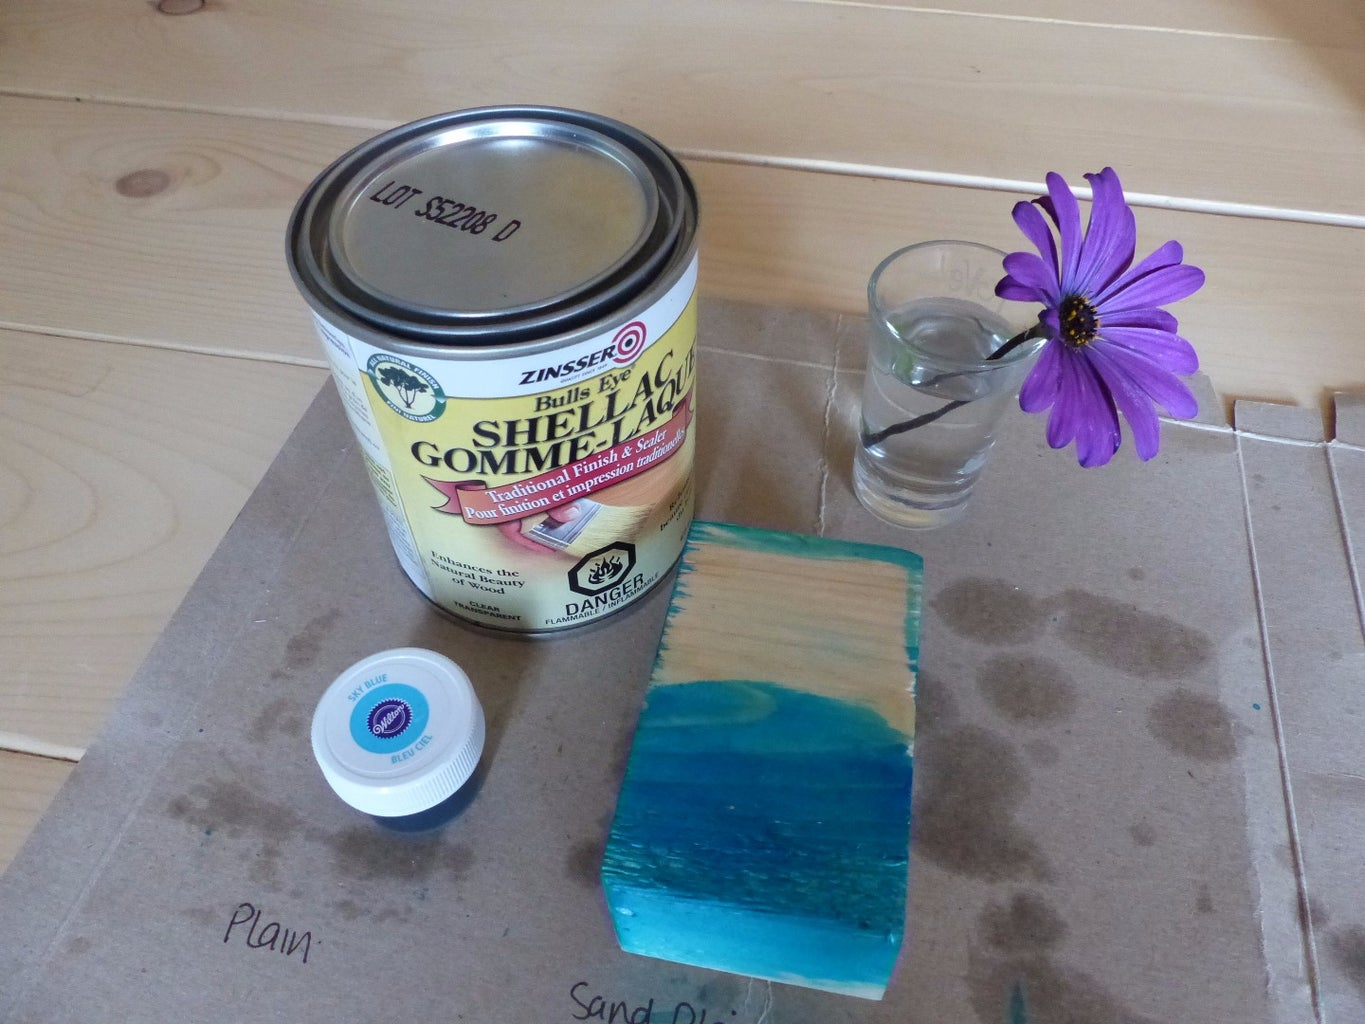 Baby-safe Food-colour Stain for Wood: an Experiment